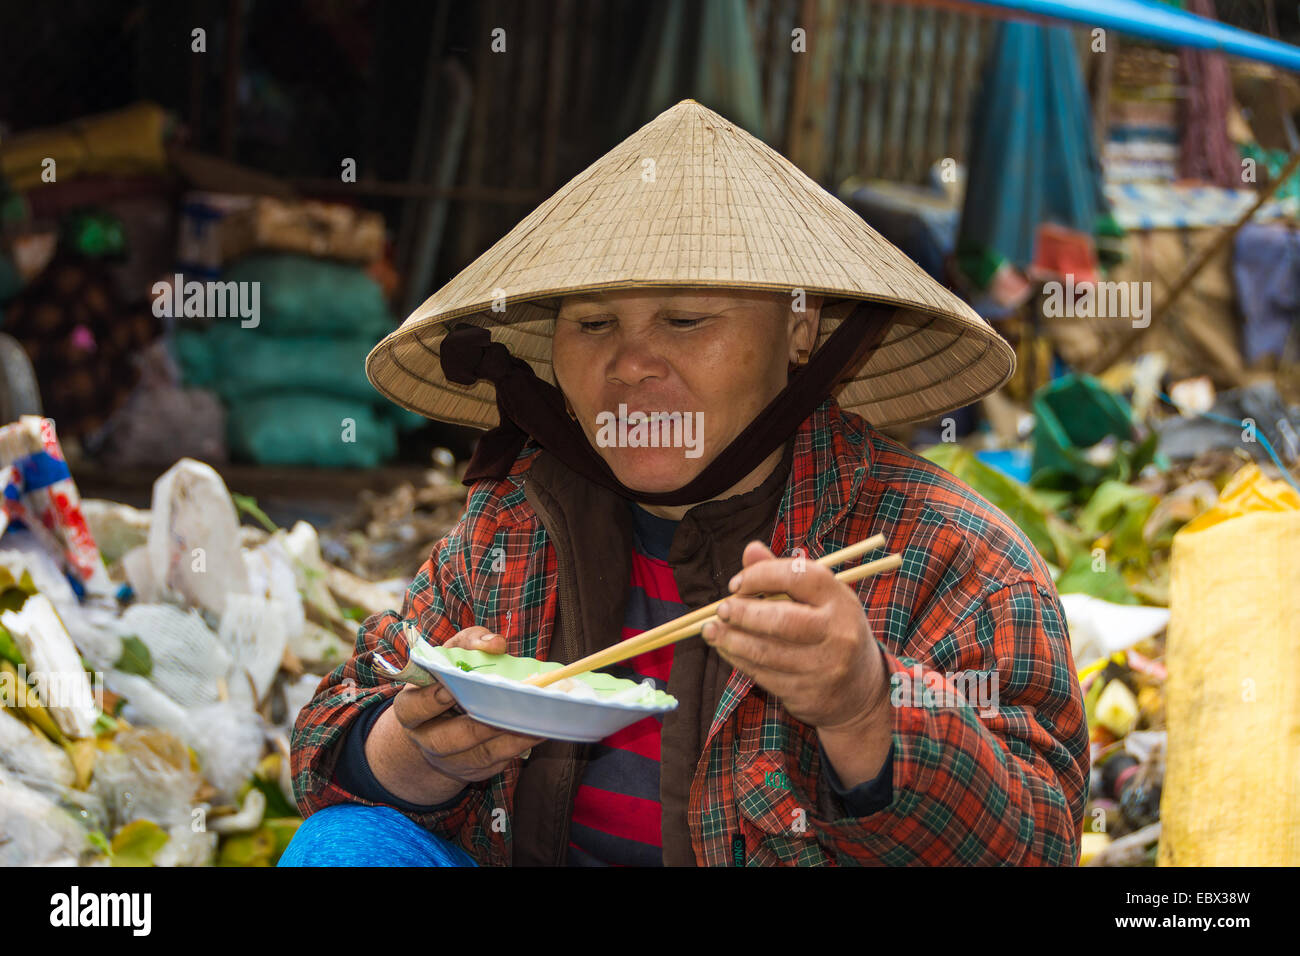 Vietnamese lady market trader eating a bowl of noodles - Stock Image